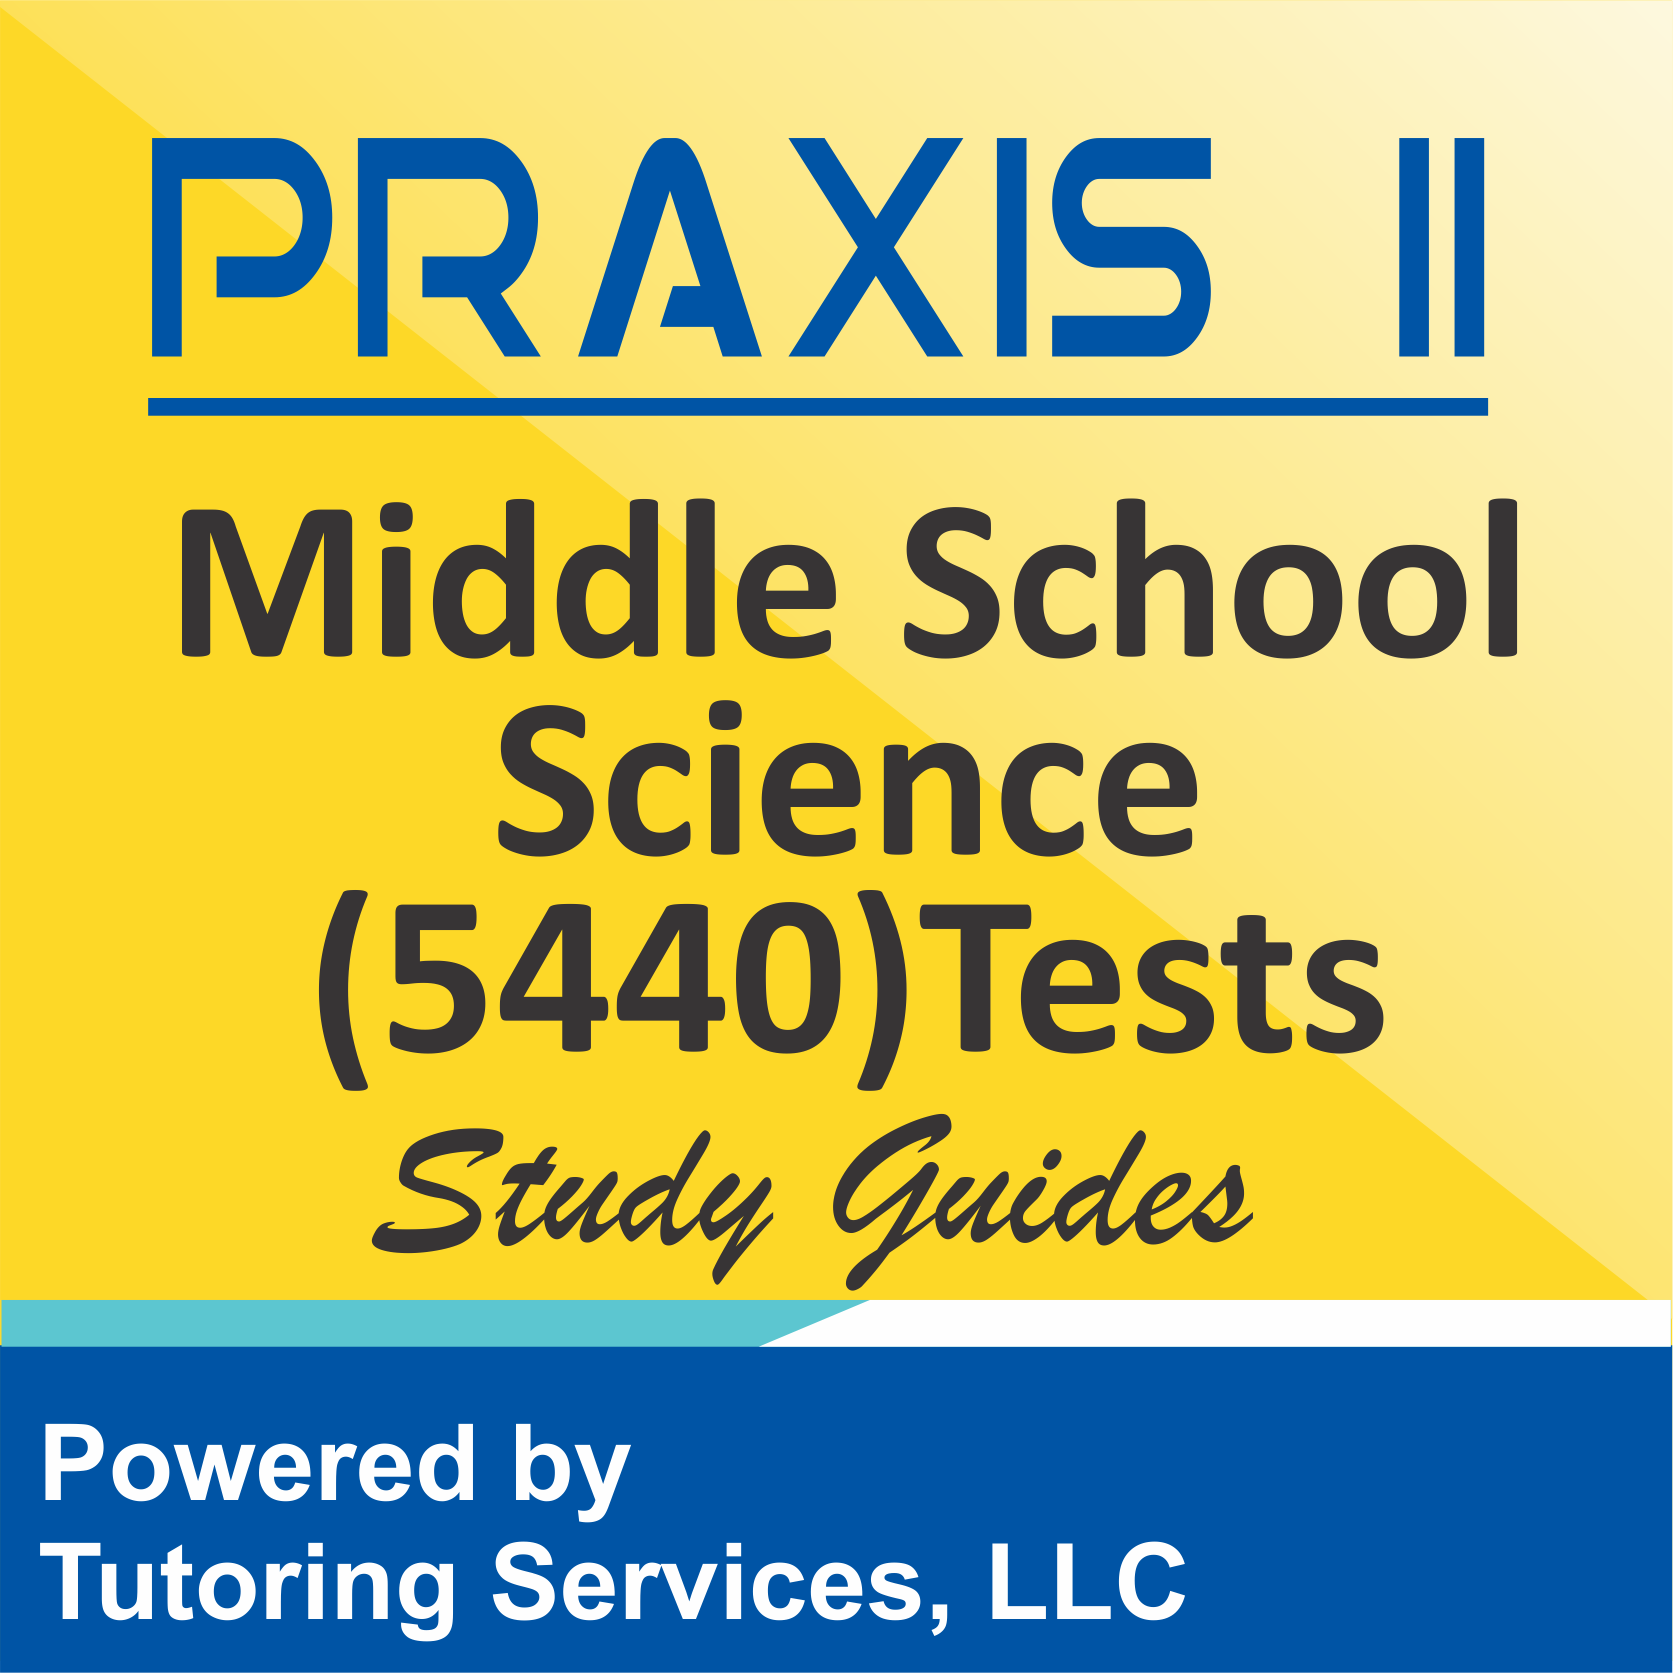 Praxis II Middle School: Science (5440) Examination Format